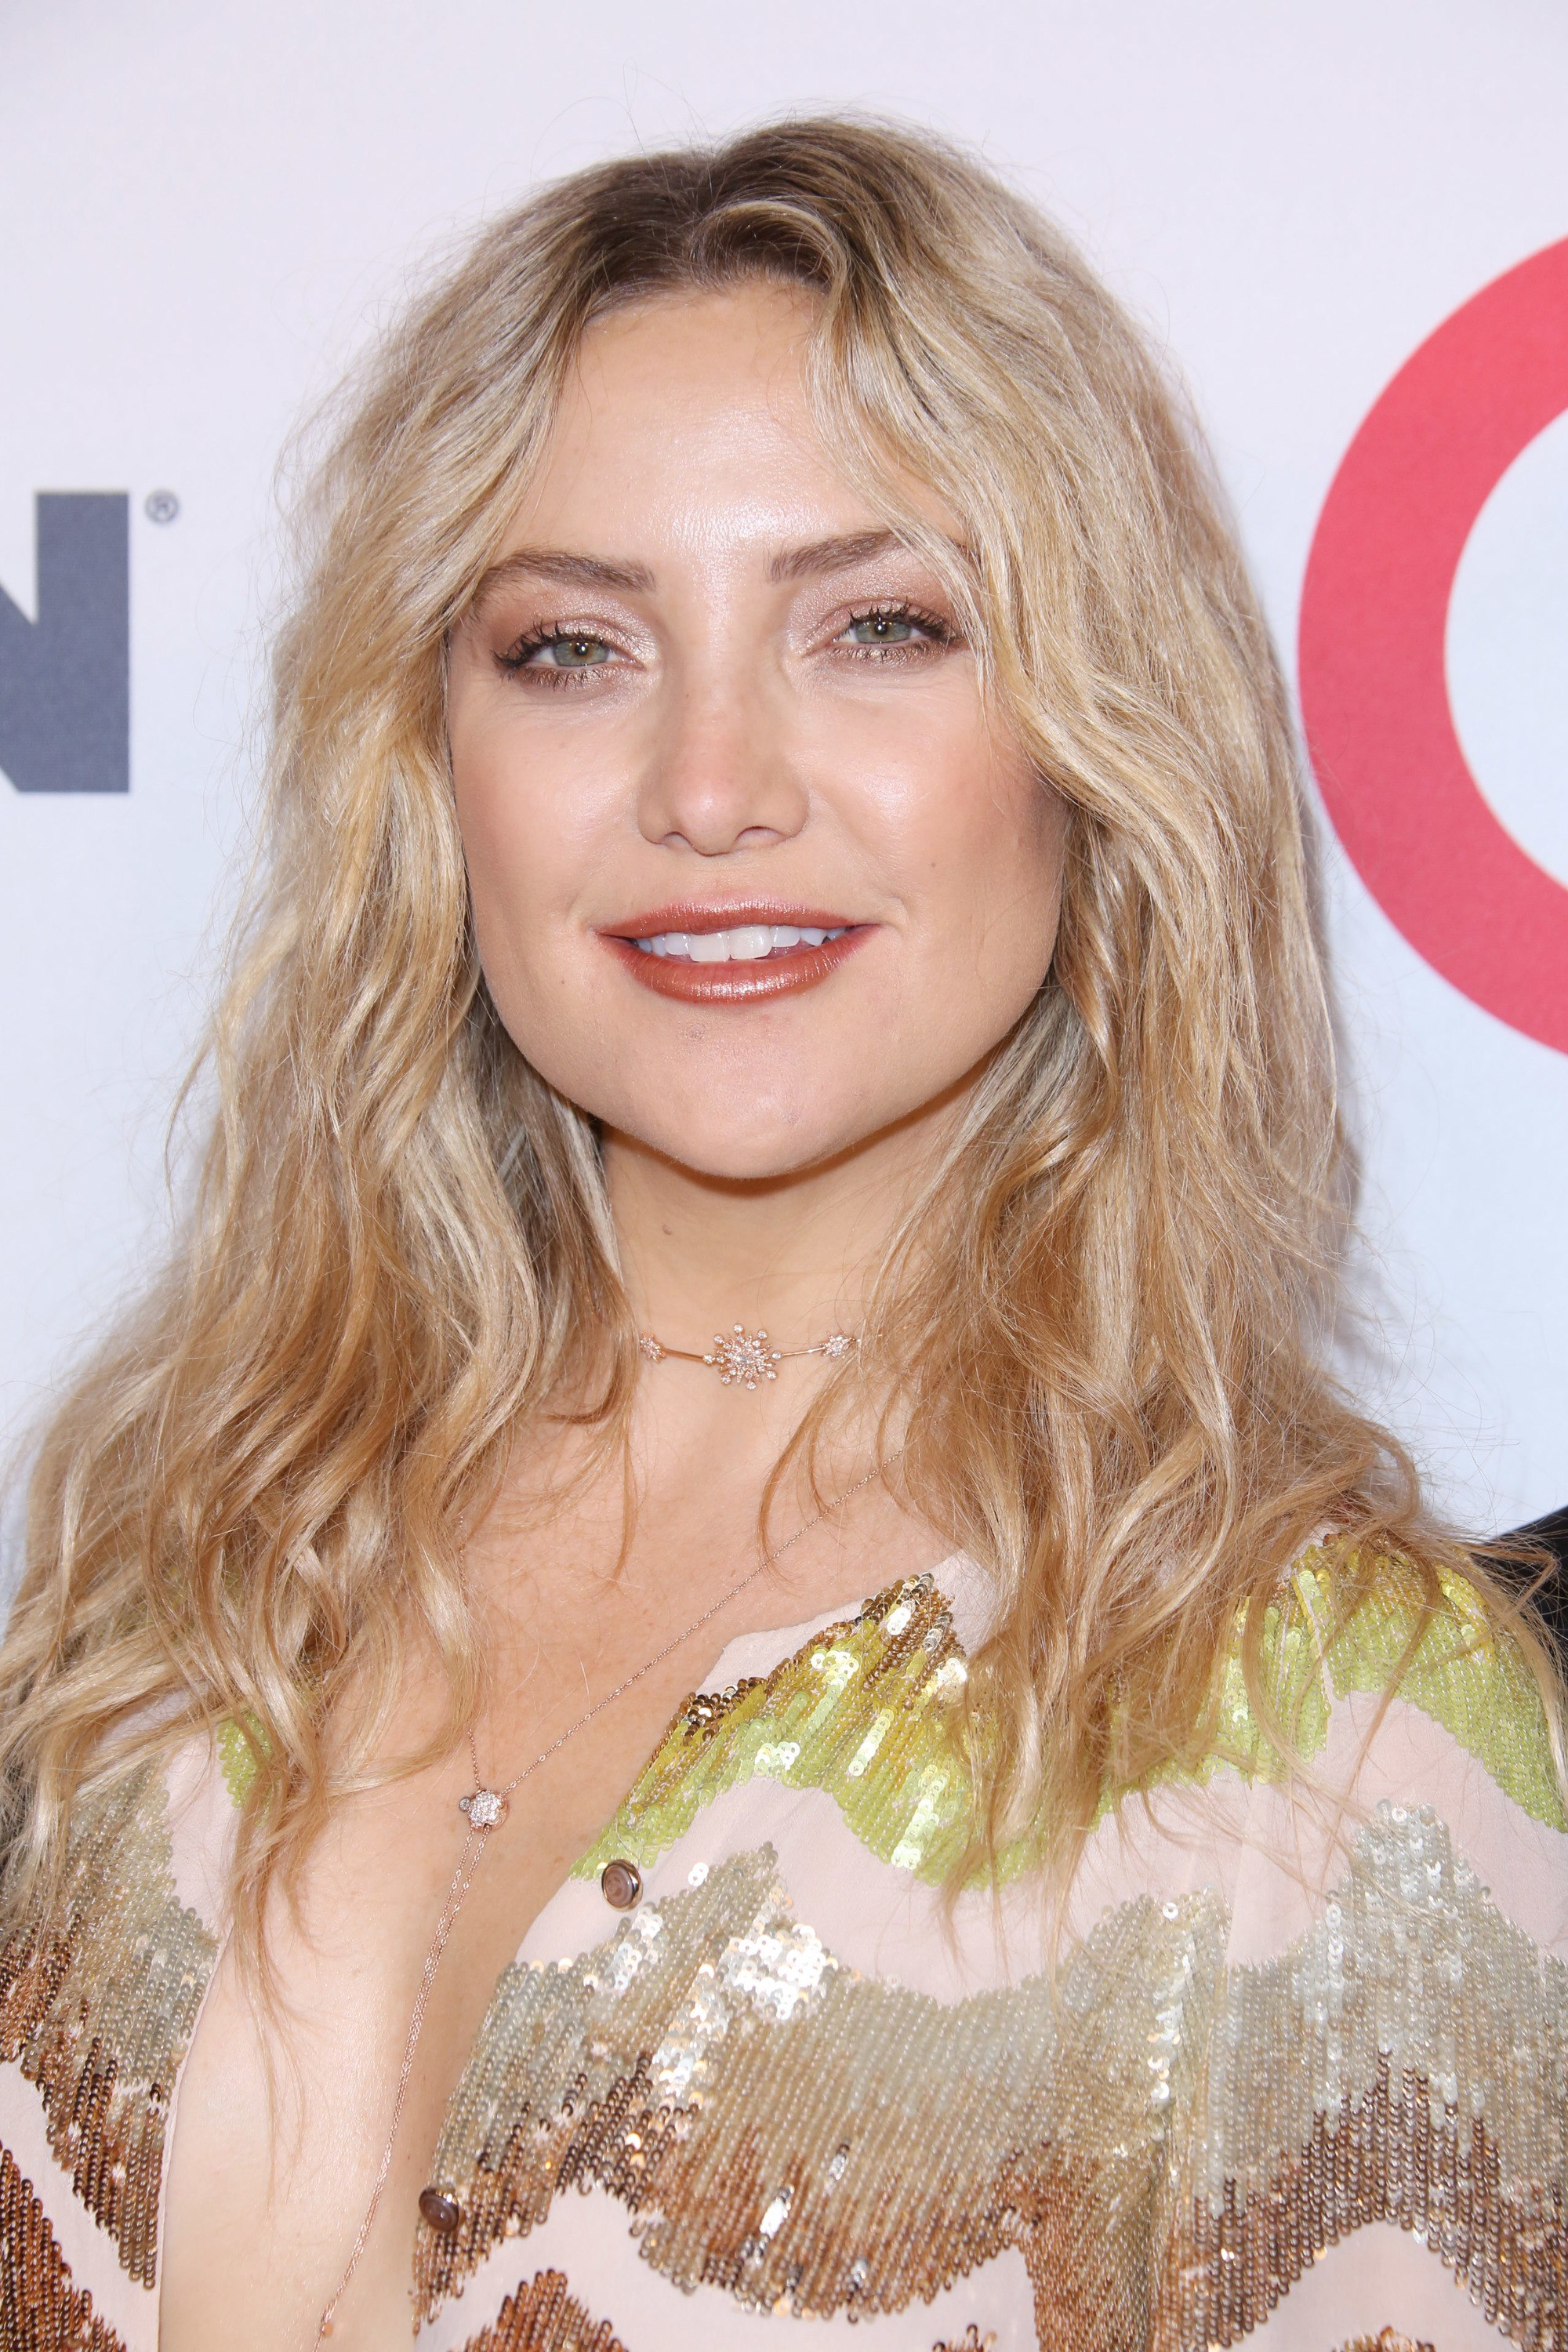 hairstyles for fine curly hair: kate hudson with shoulder length wispy blonde waves